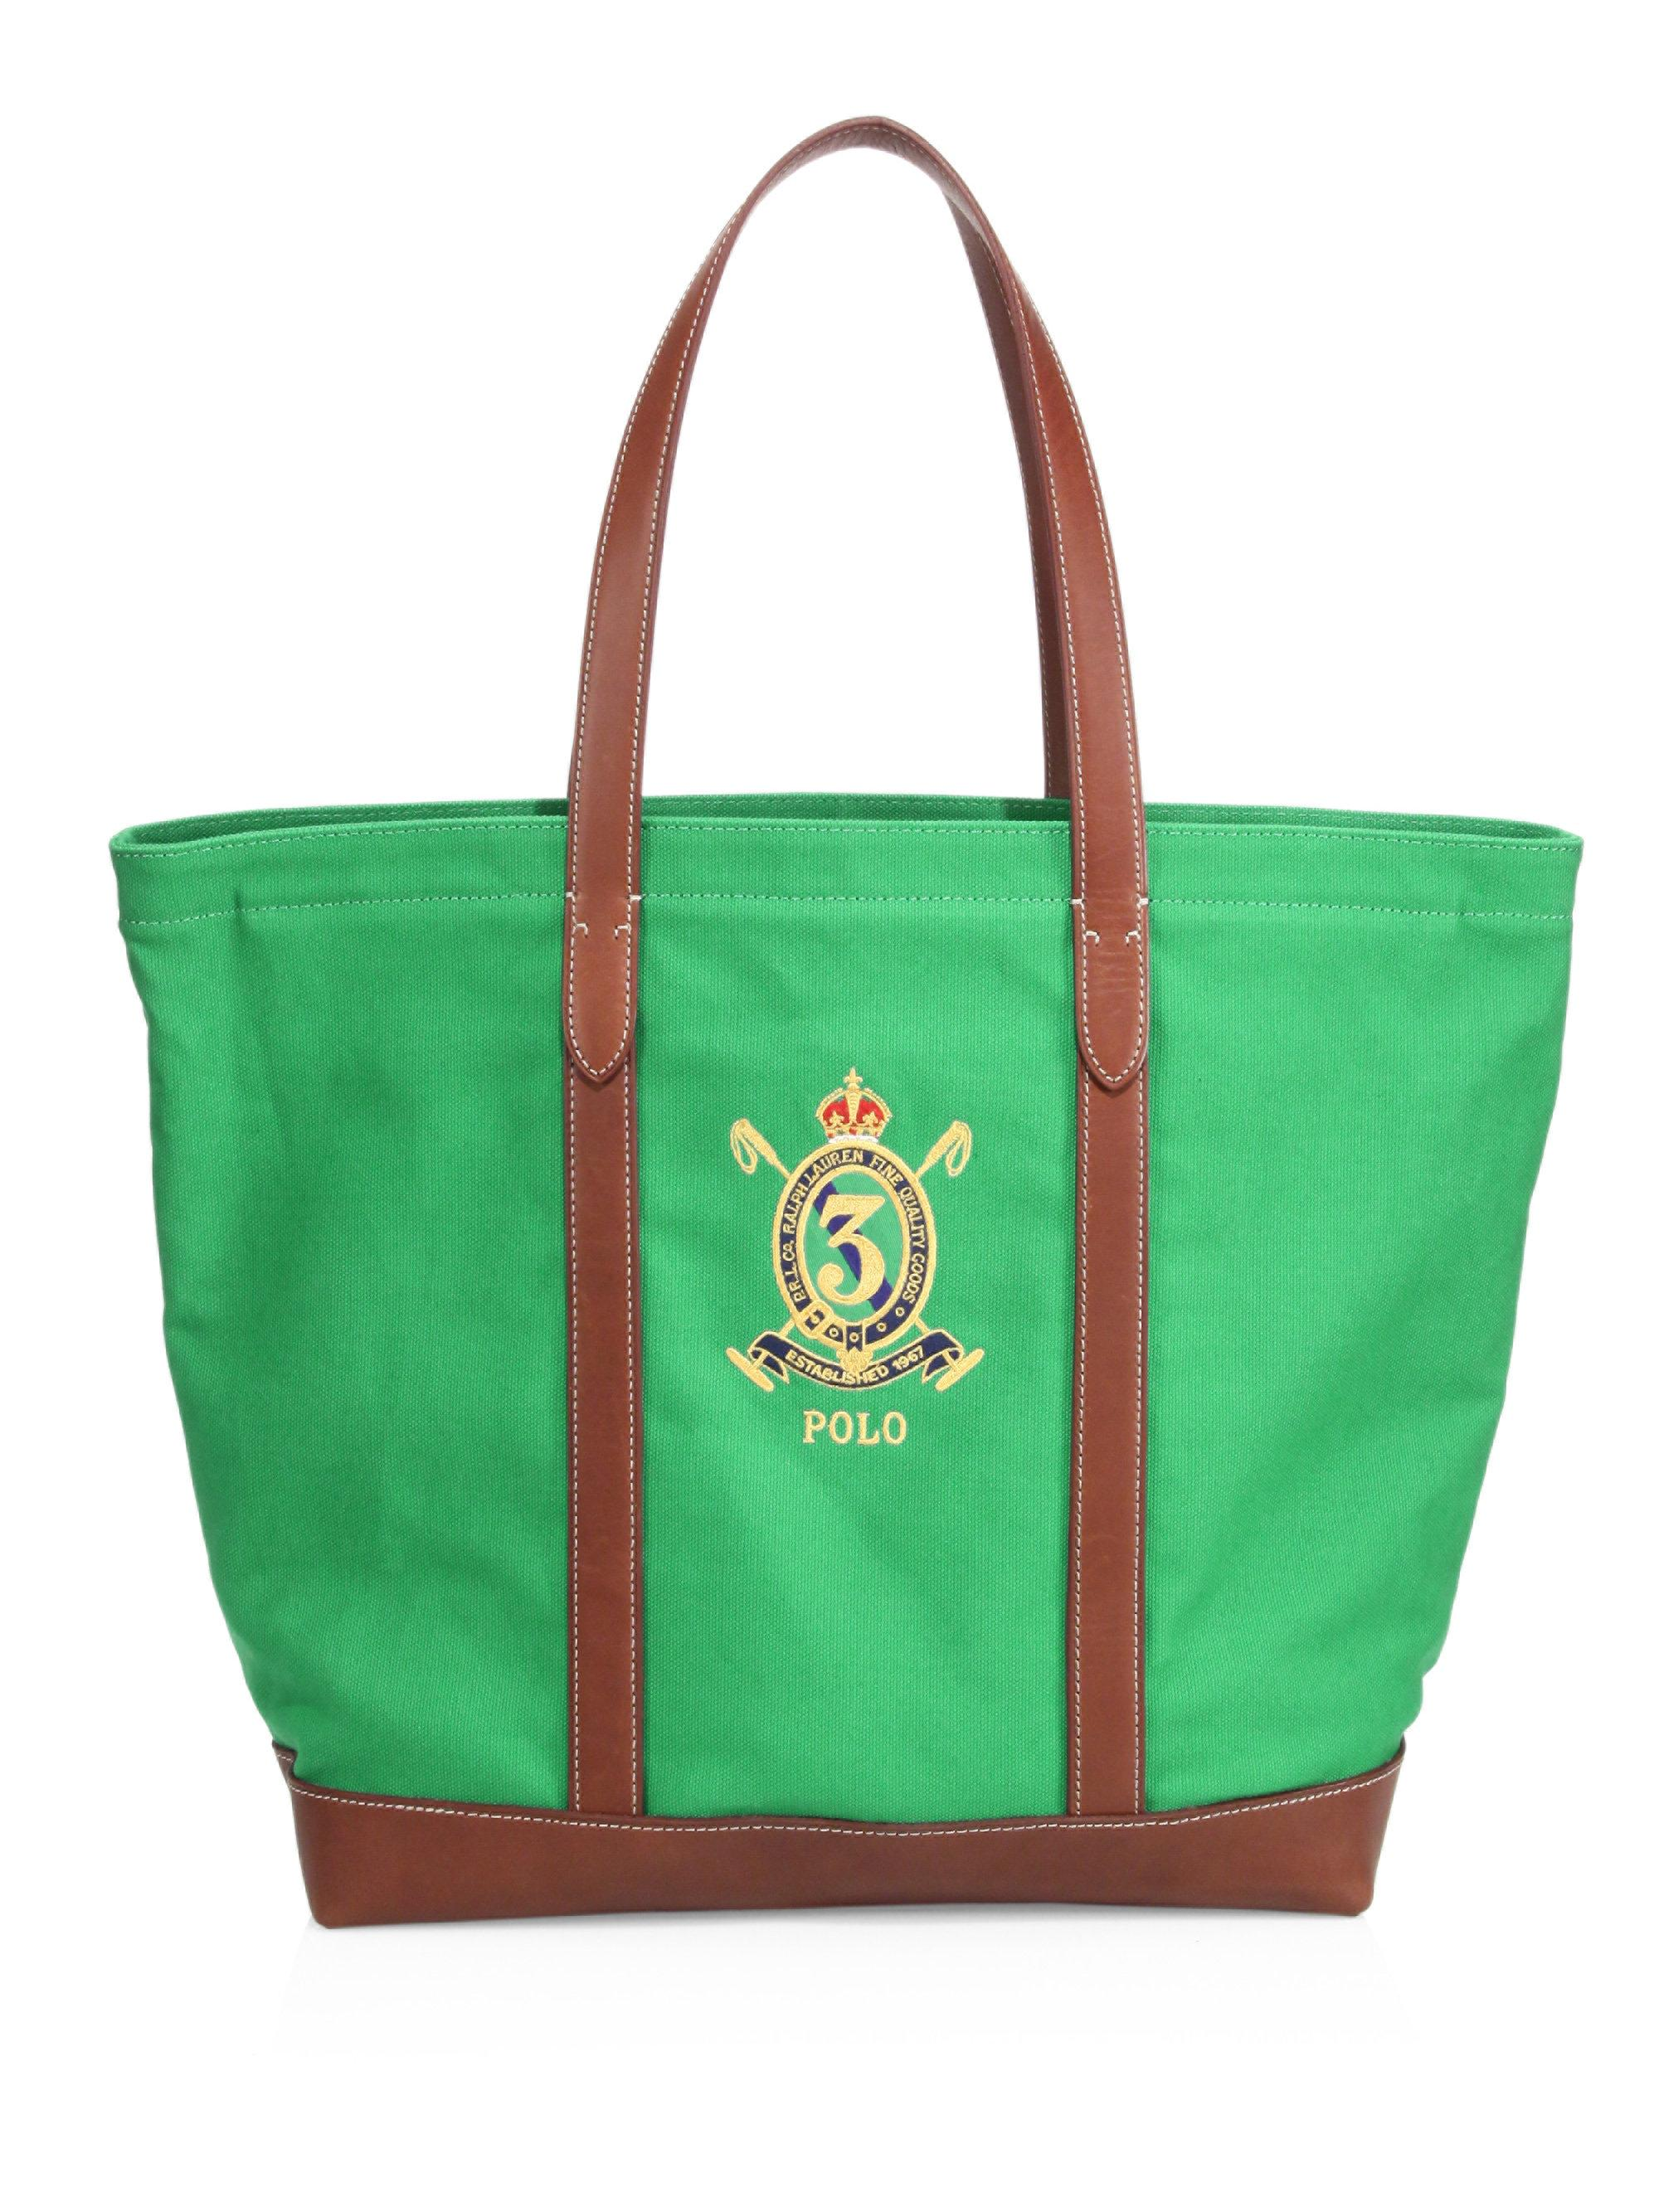 Lyst - Polo Ralph Lauren Crest Canvas Tote in Green for Men 7ea4563377974